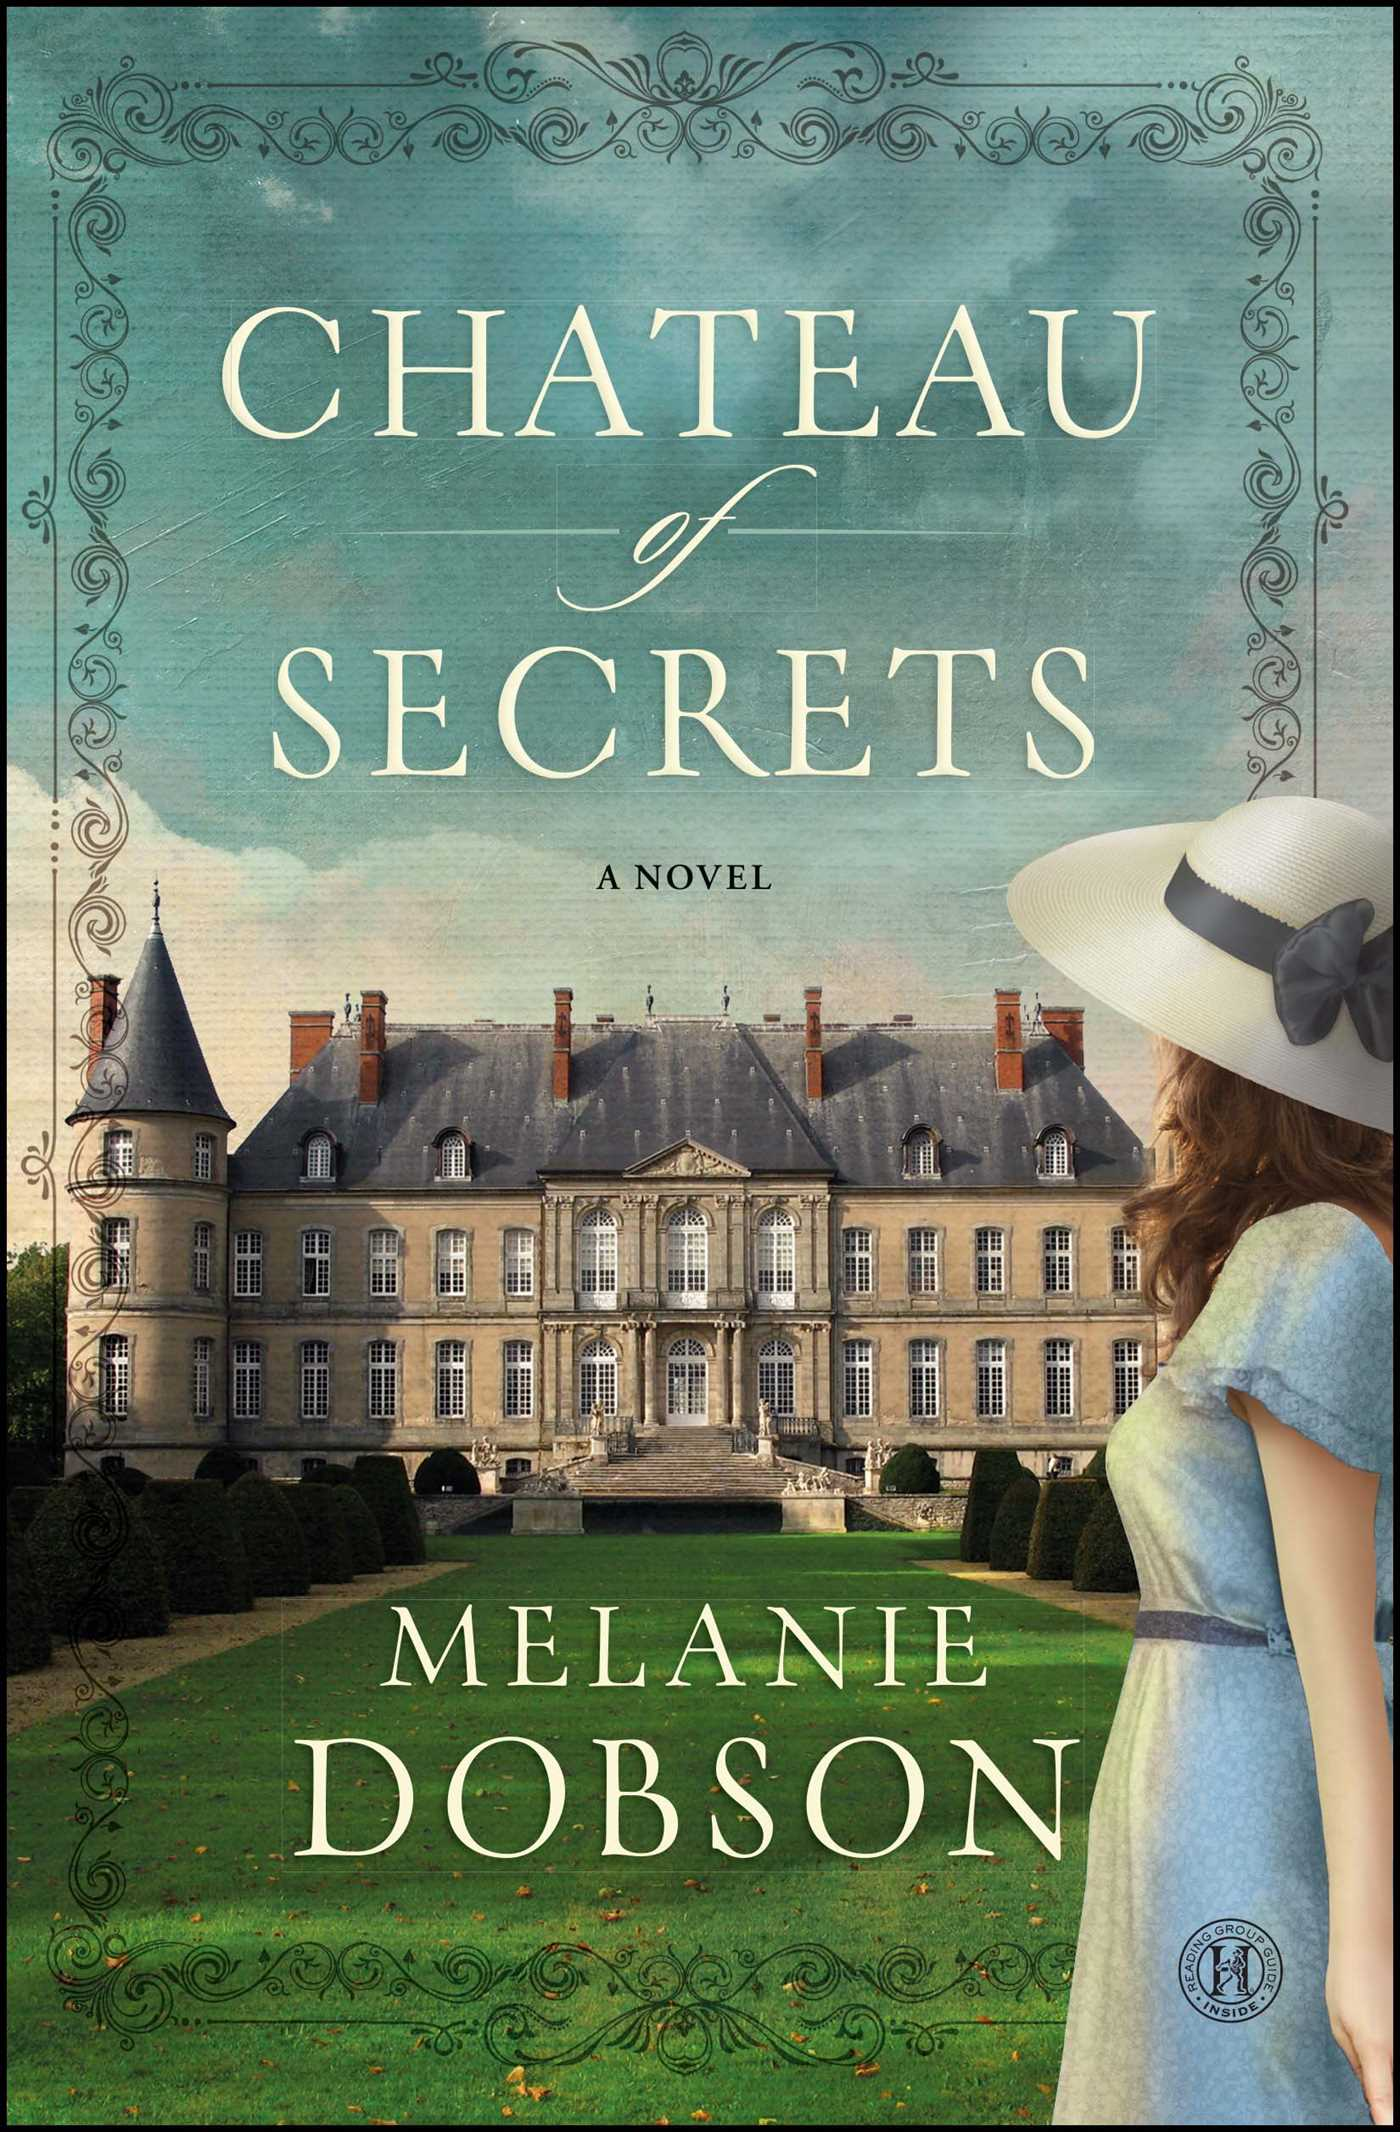 Chateau-of-secrets-9781476746111_hr